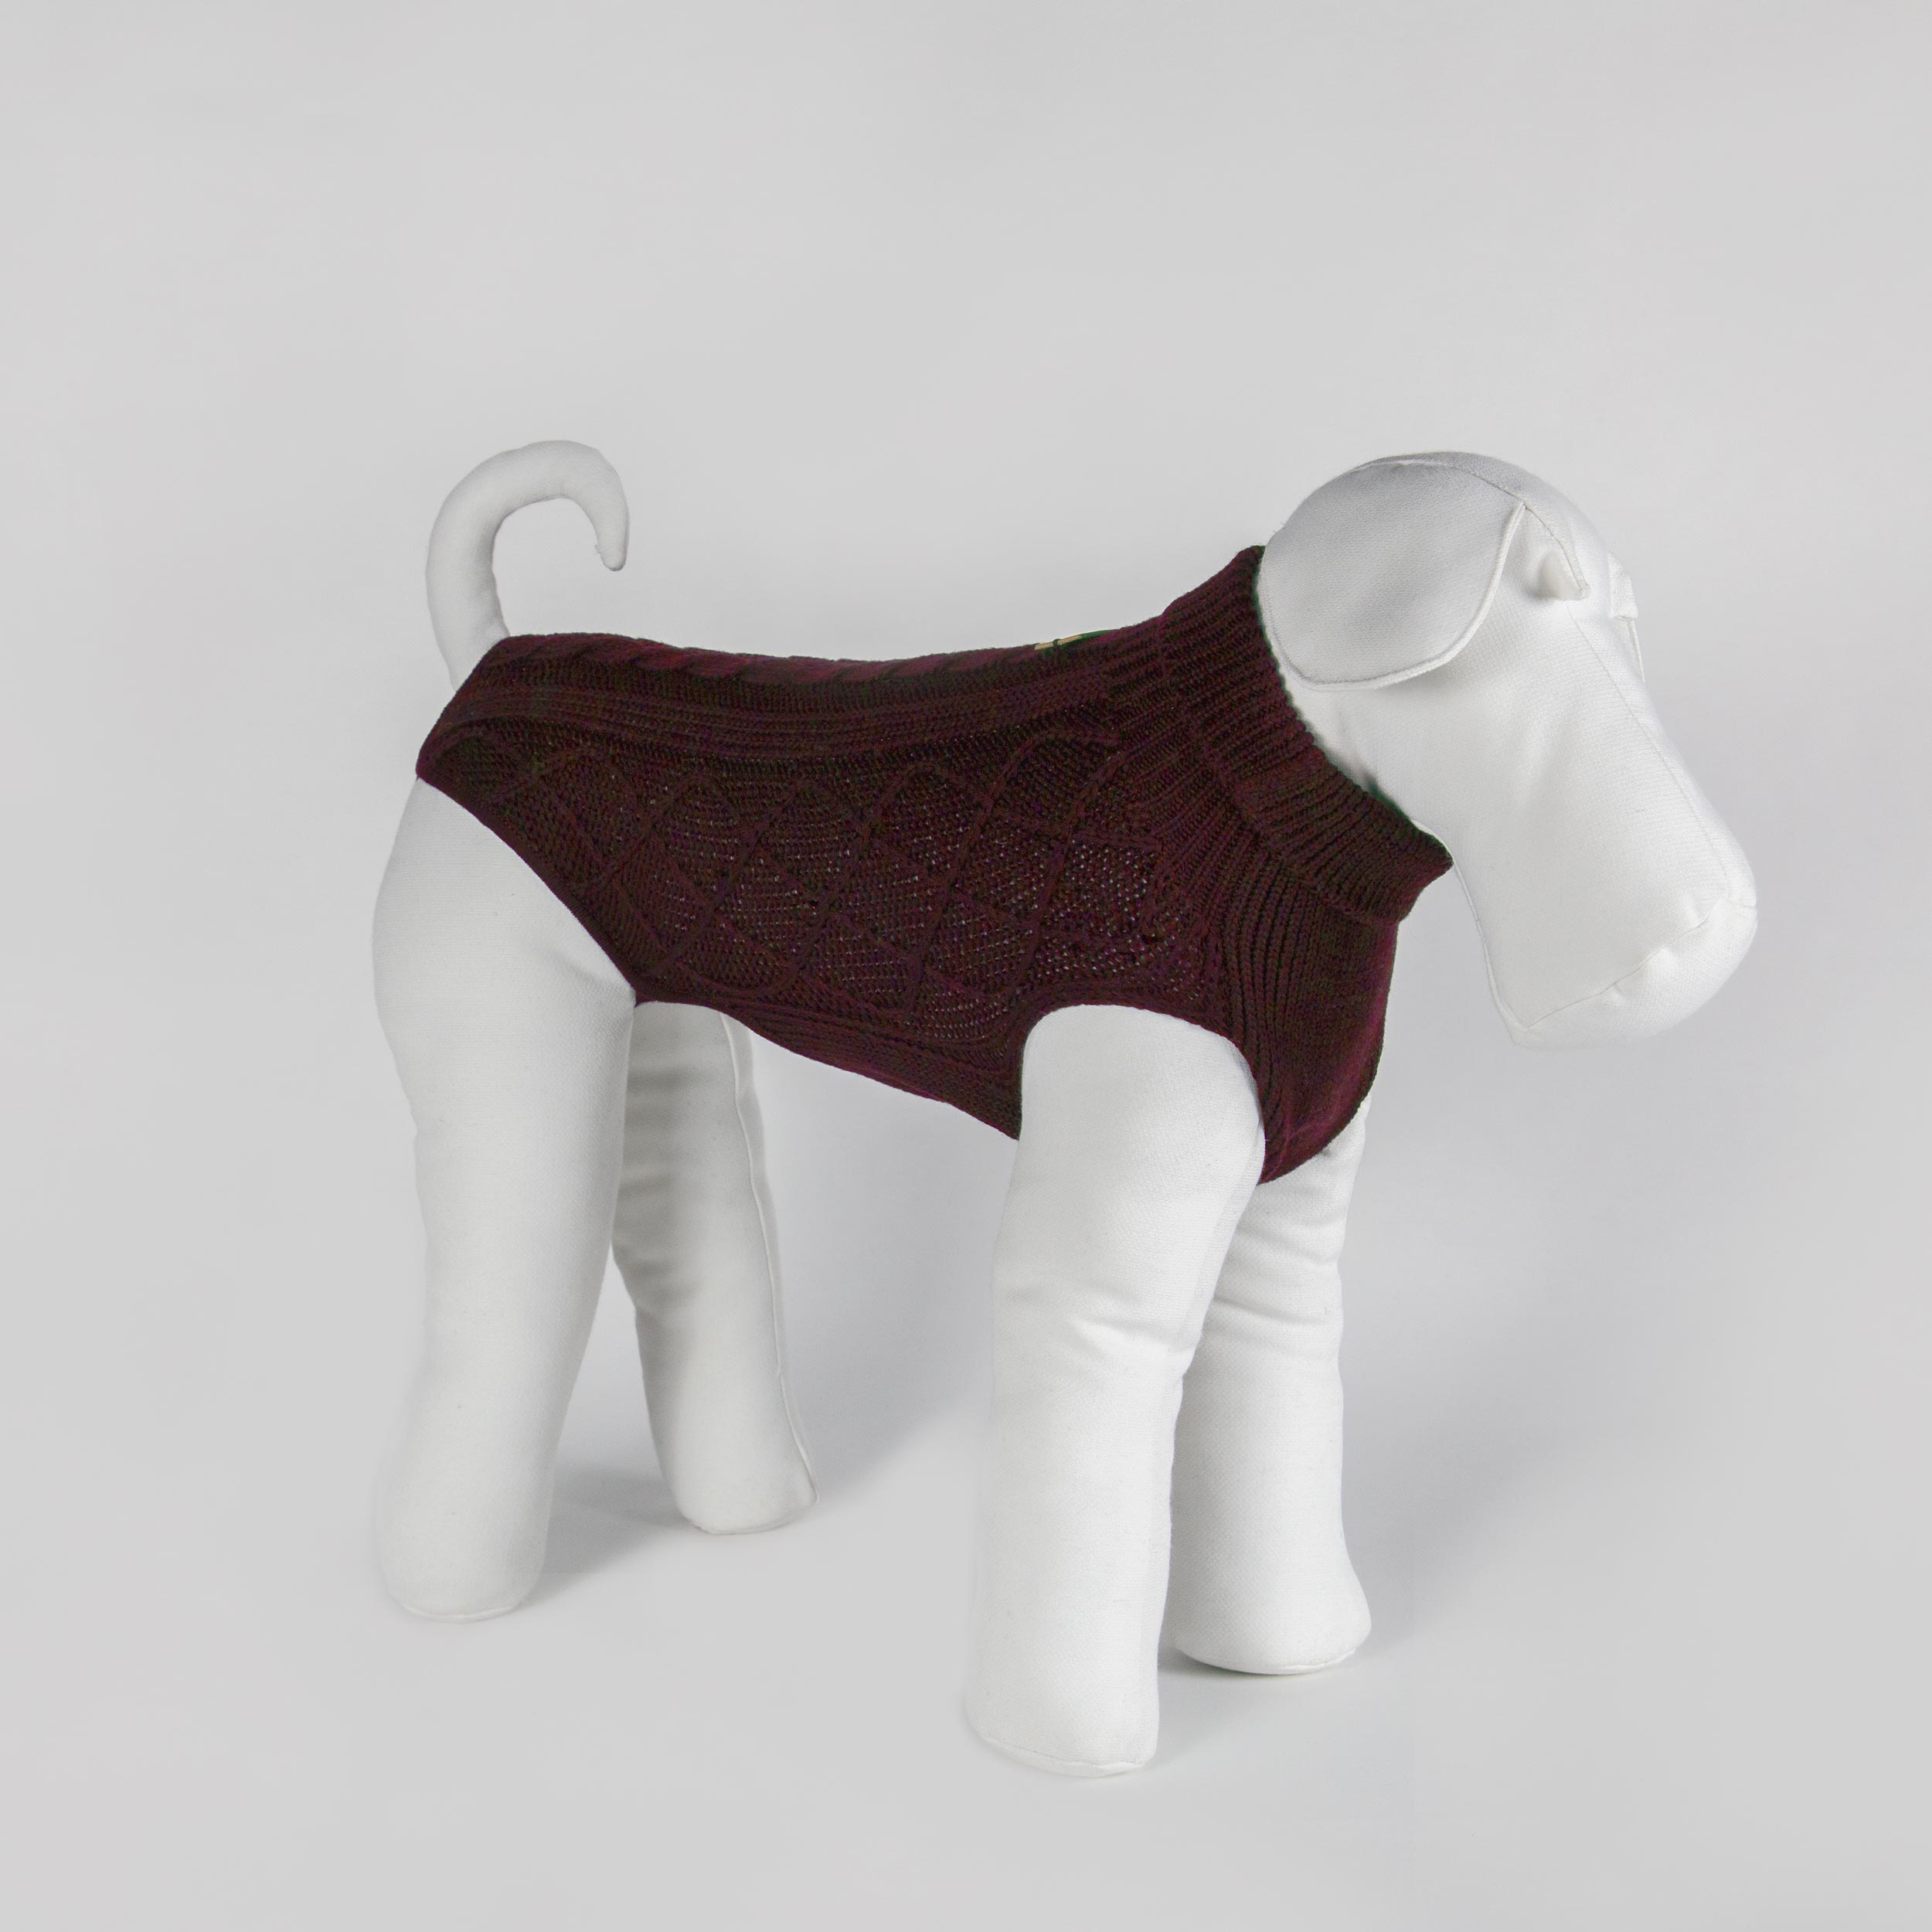 made-to-measure dog sweater in wine red pure wool